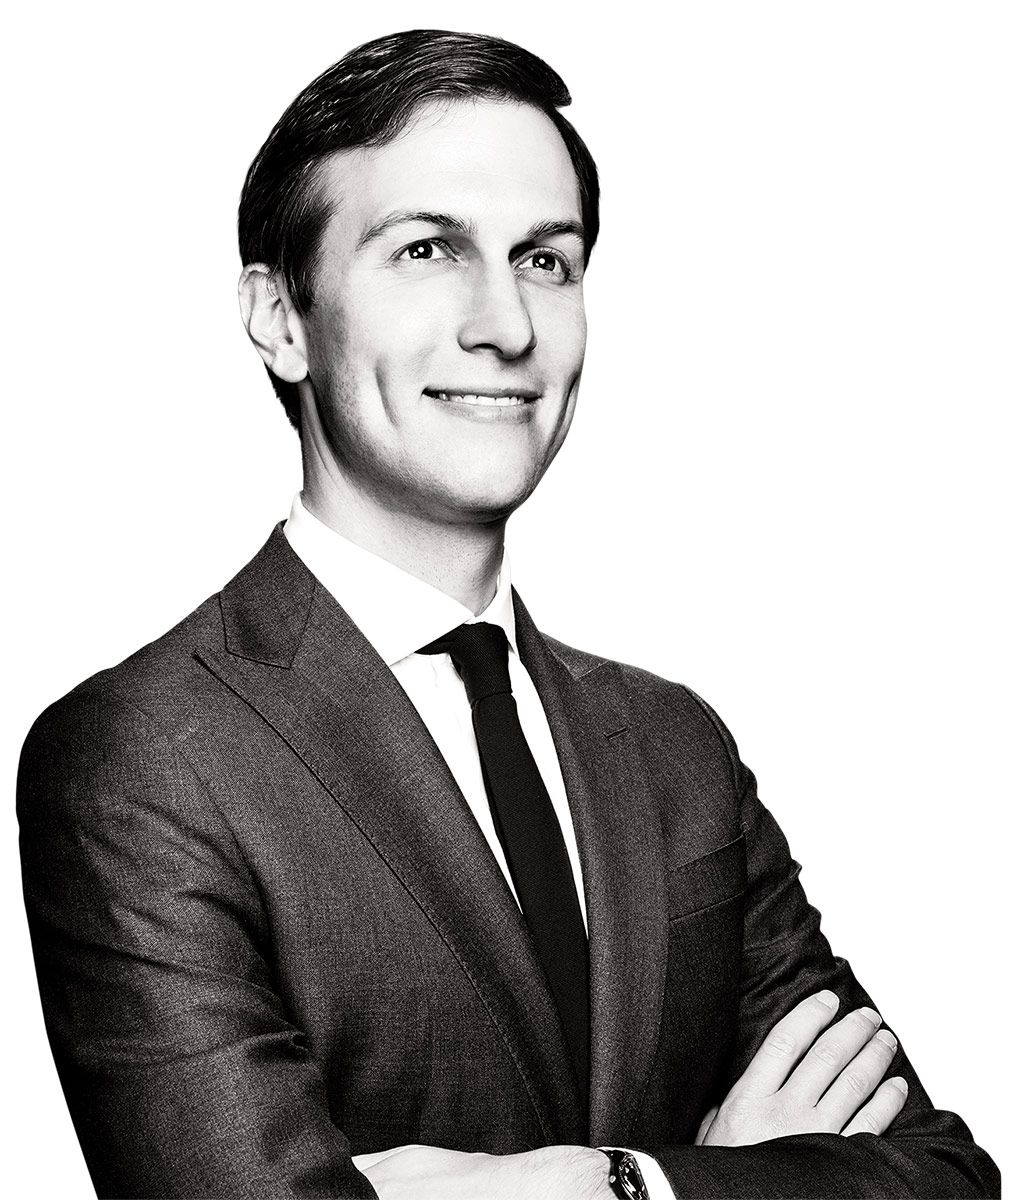 https://pixel.nymag.com/imgs/daily/intelligencer/2017/01/06/magazine/06-kushner-lede-2.w512.h600.2x.jpg